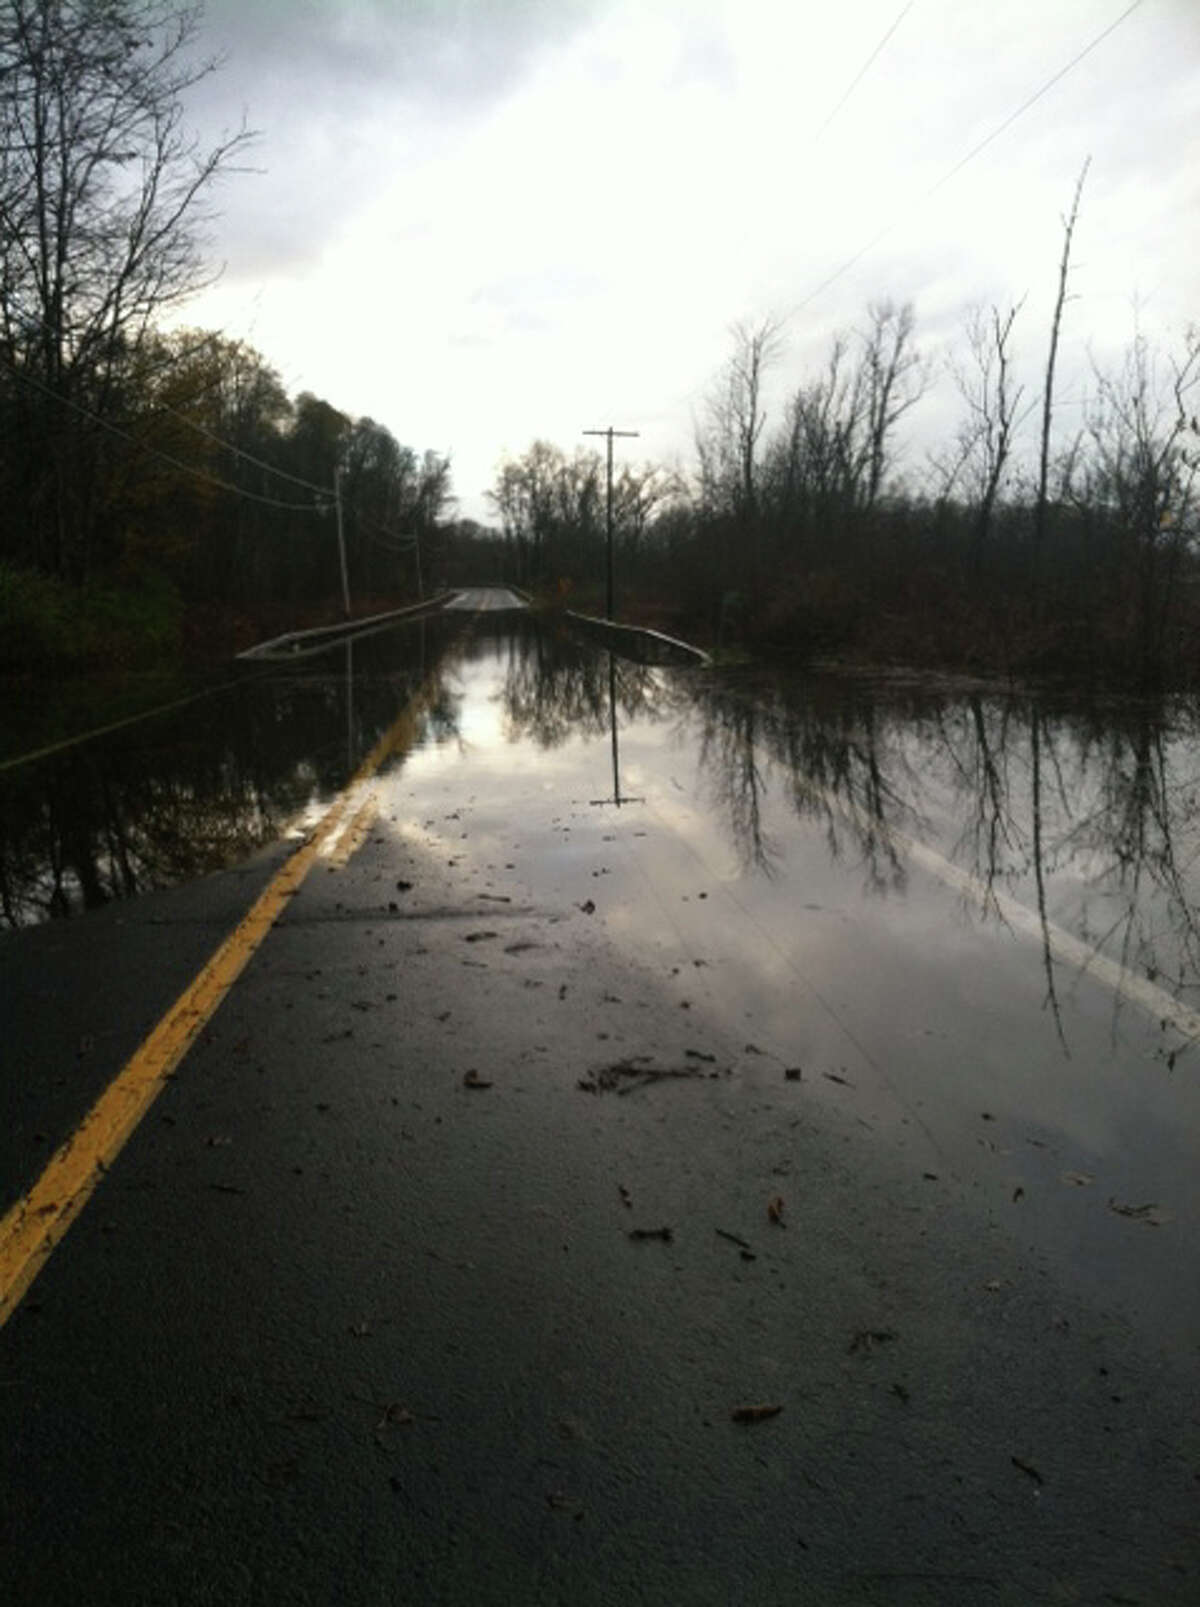 Sandy caused flooding on Route 9J in northern Columbia County on Tuesday, Oct. 30, 2012. (SCOTT WALDMAN / TIMES UNION)